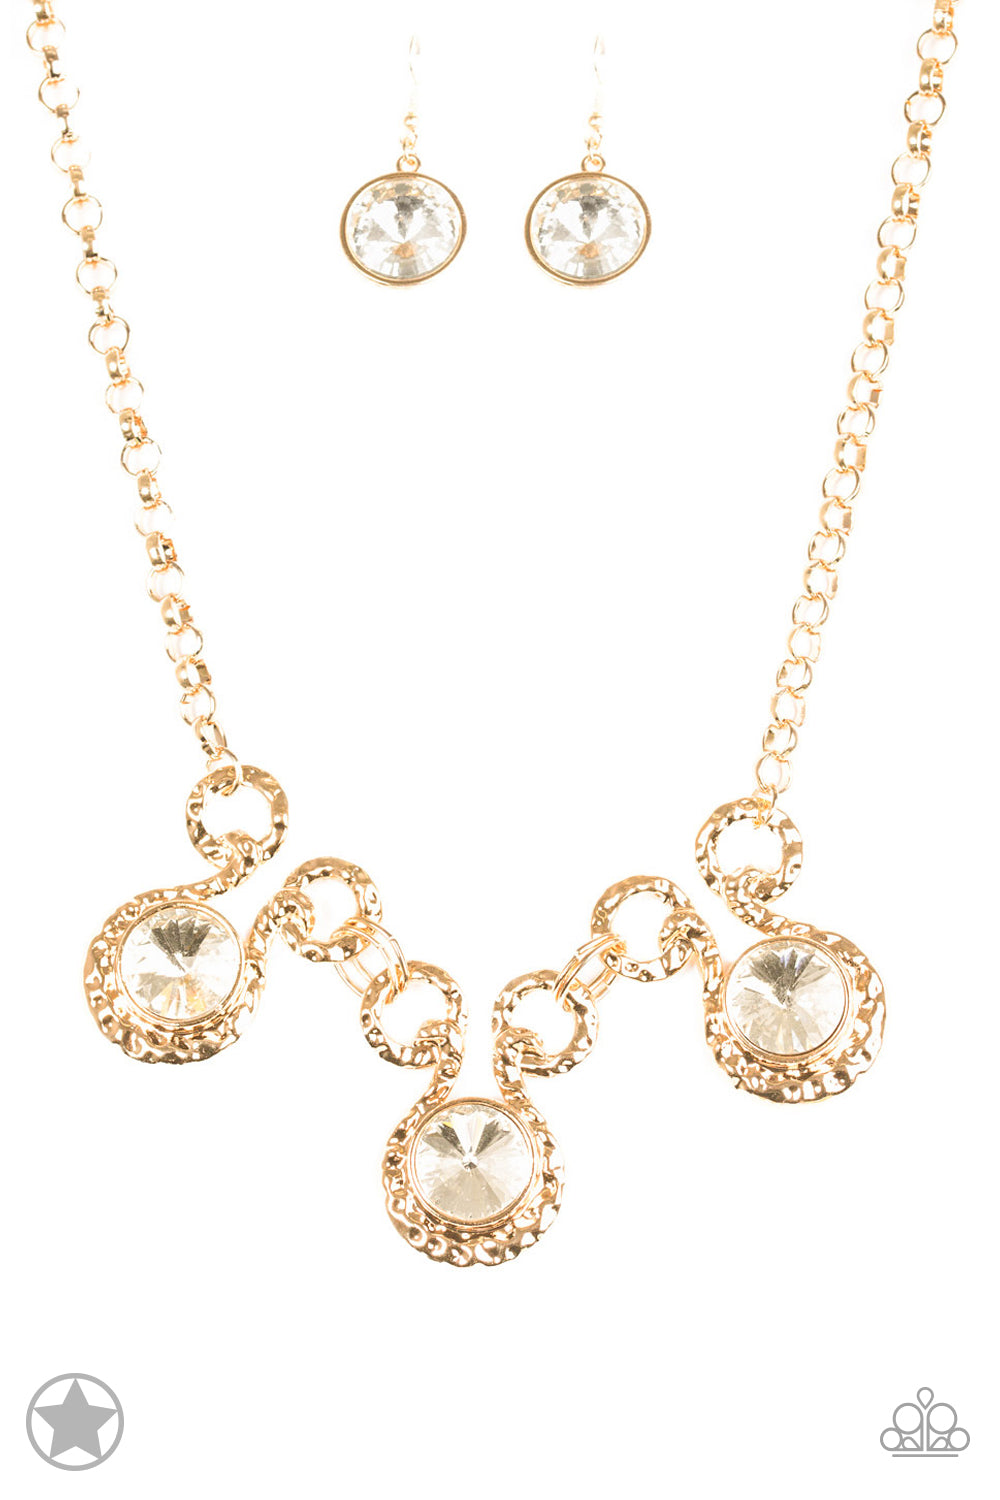 Paparazzi Necklace Blockbuster - Hypnotized - Gold